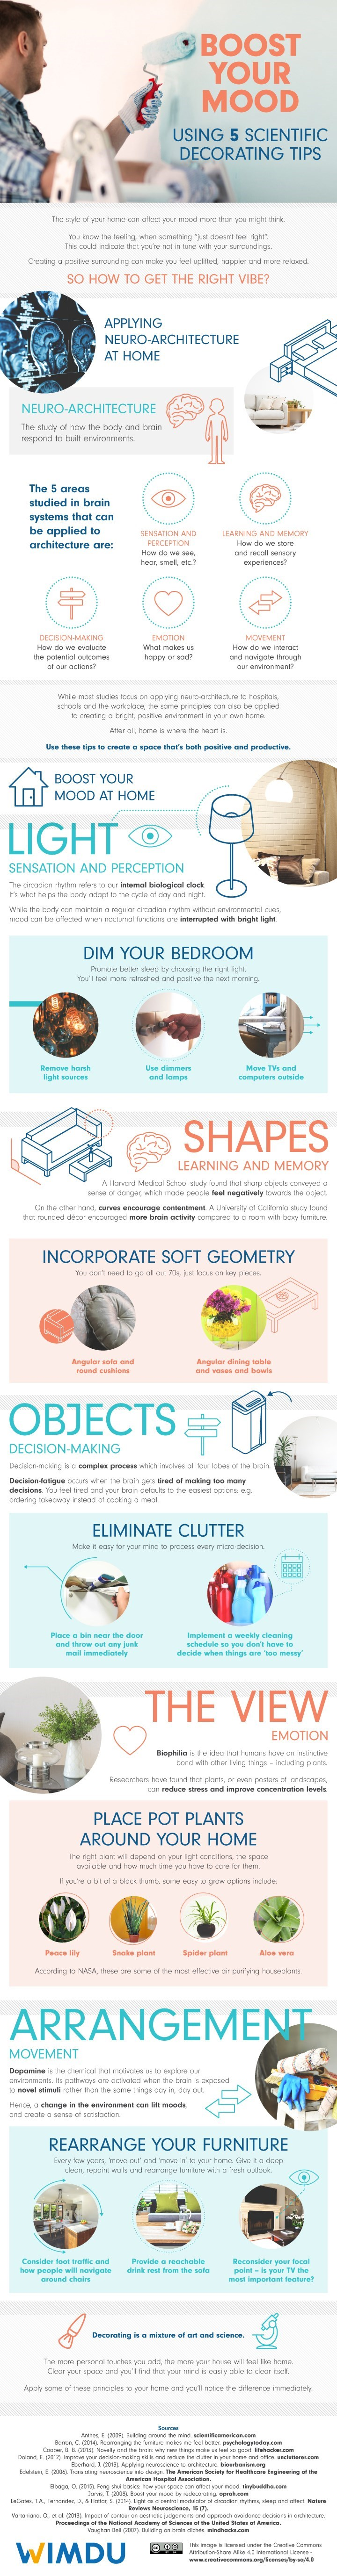 Boost Your Mood Using 5 Scientific Decorating Tips